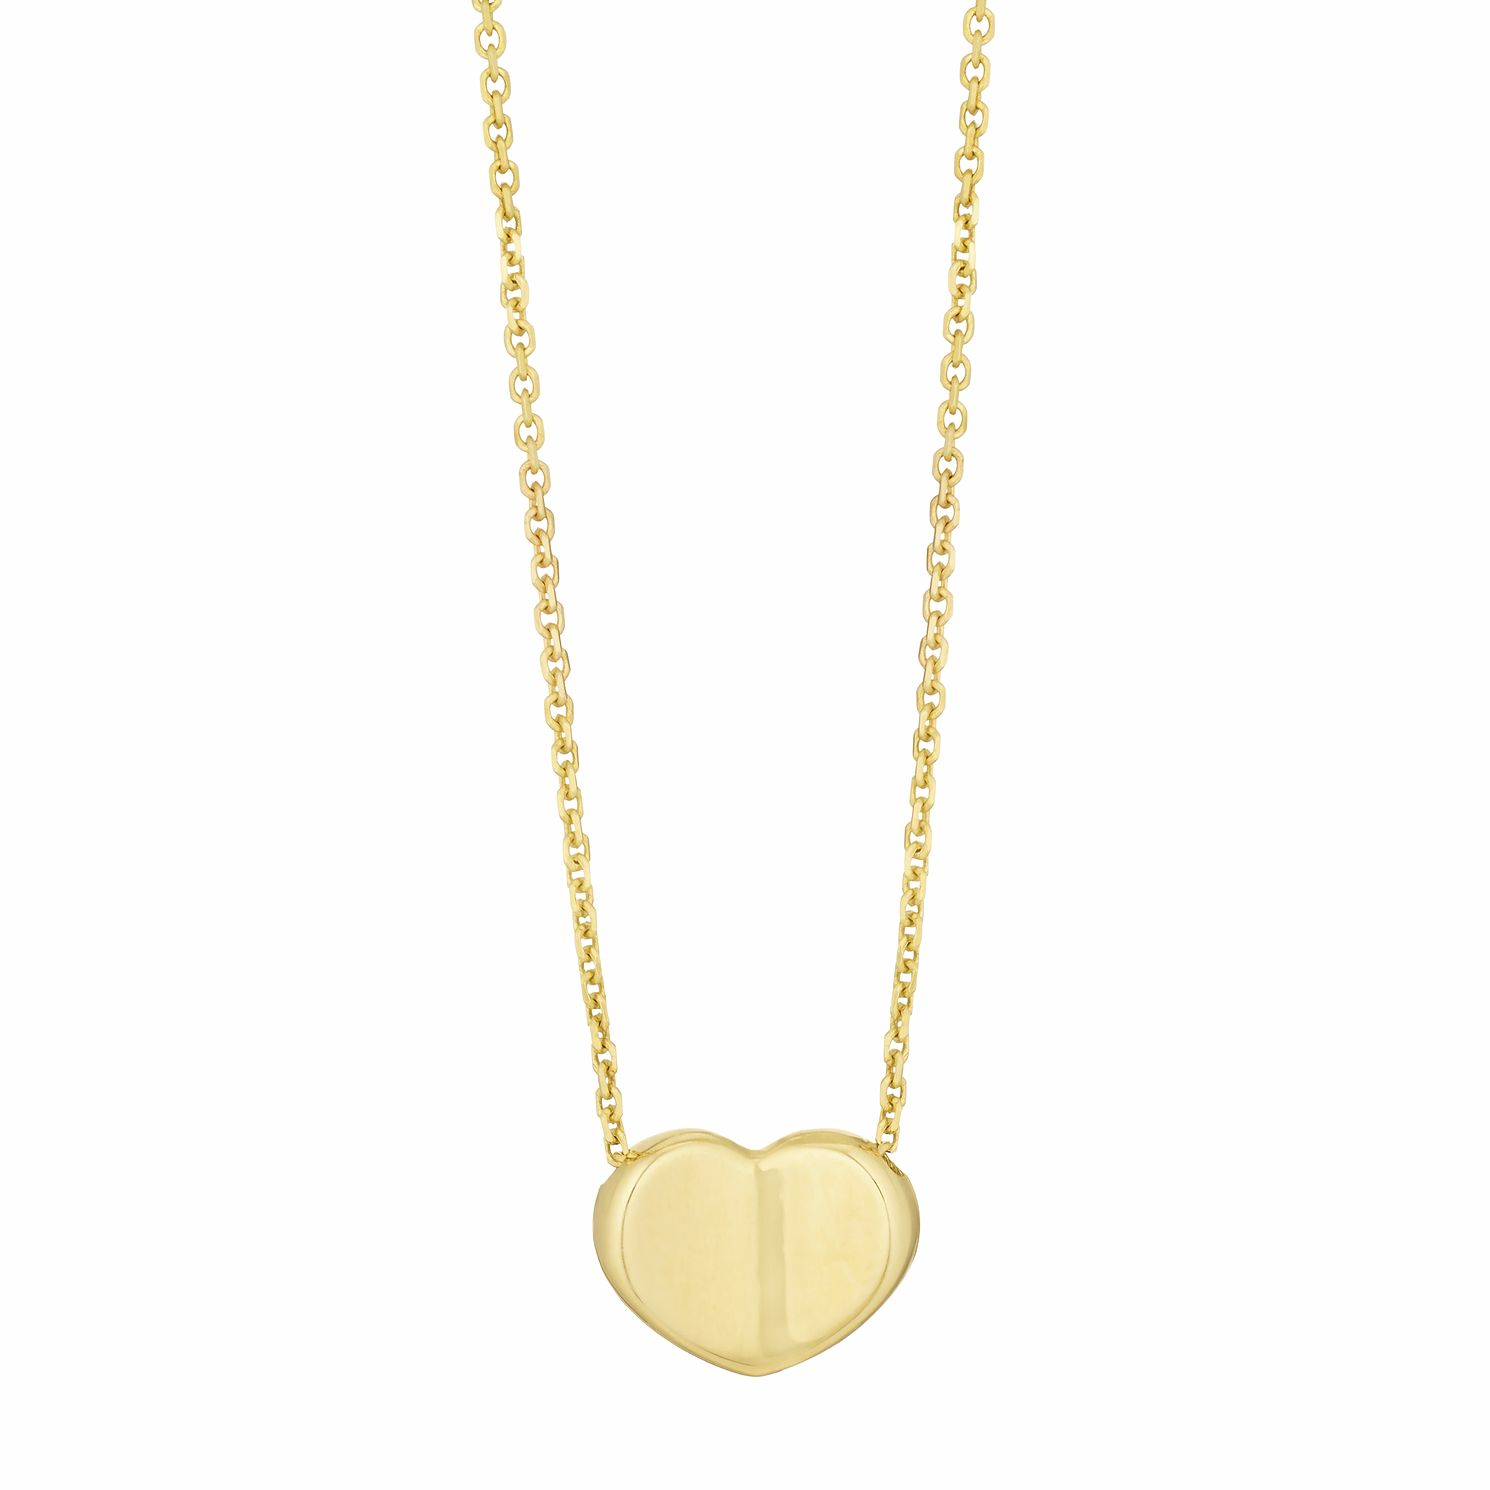 9ct Yellow Gold Heart Necklace - Product number 3165086